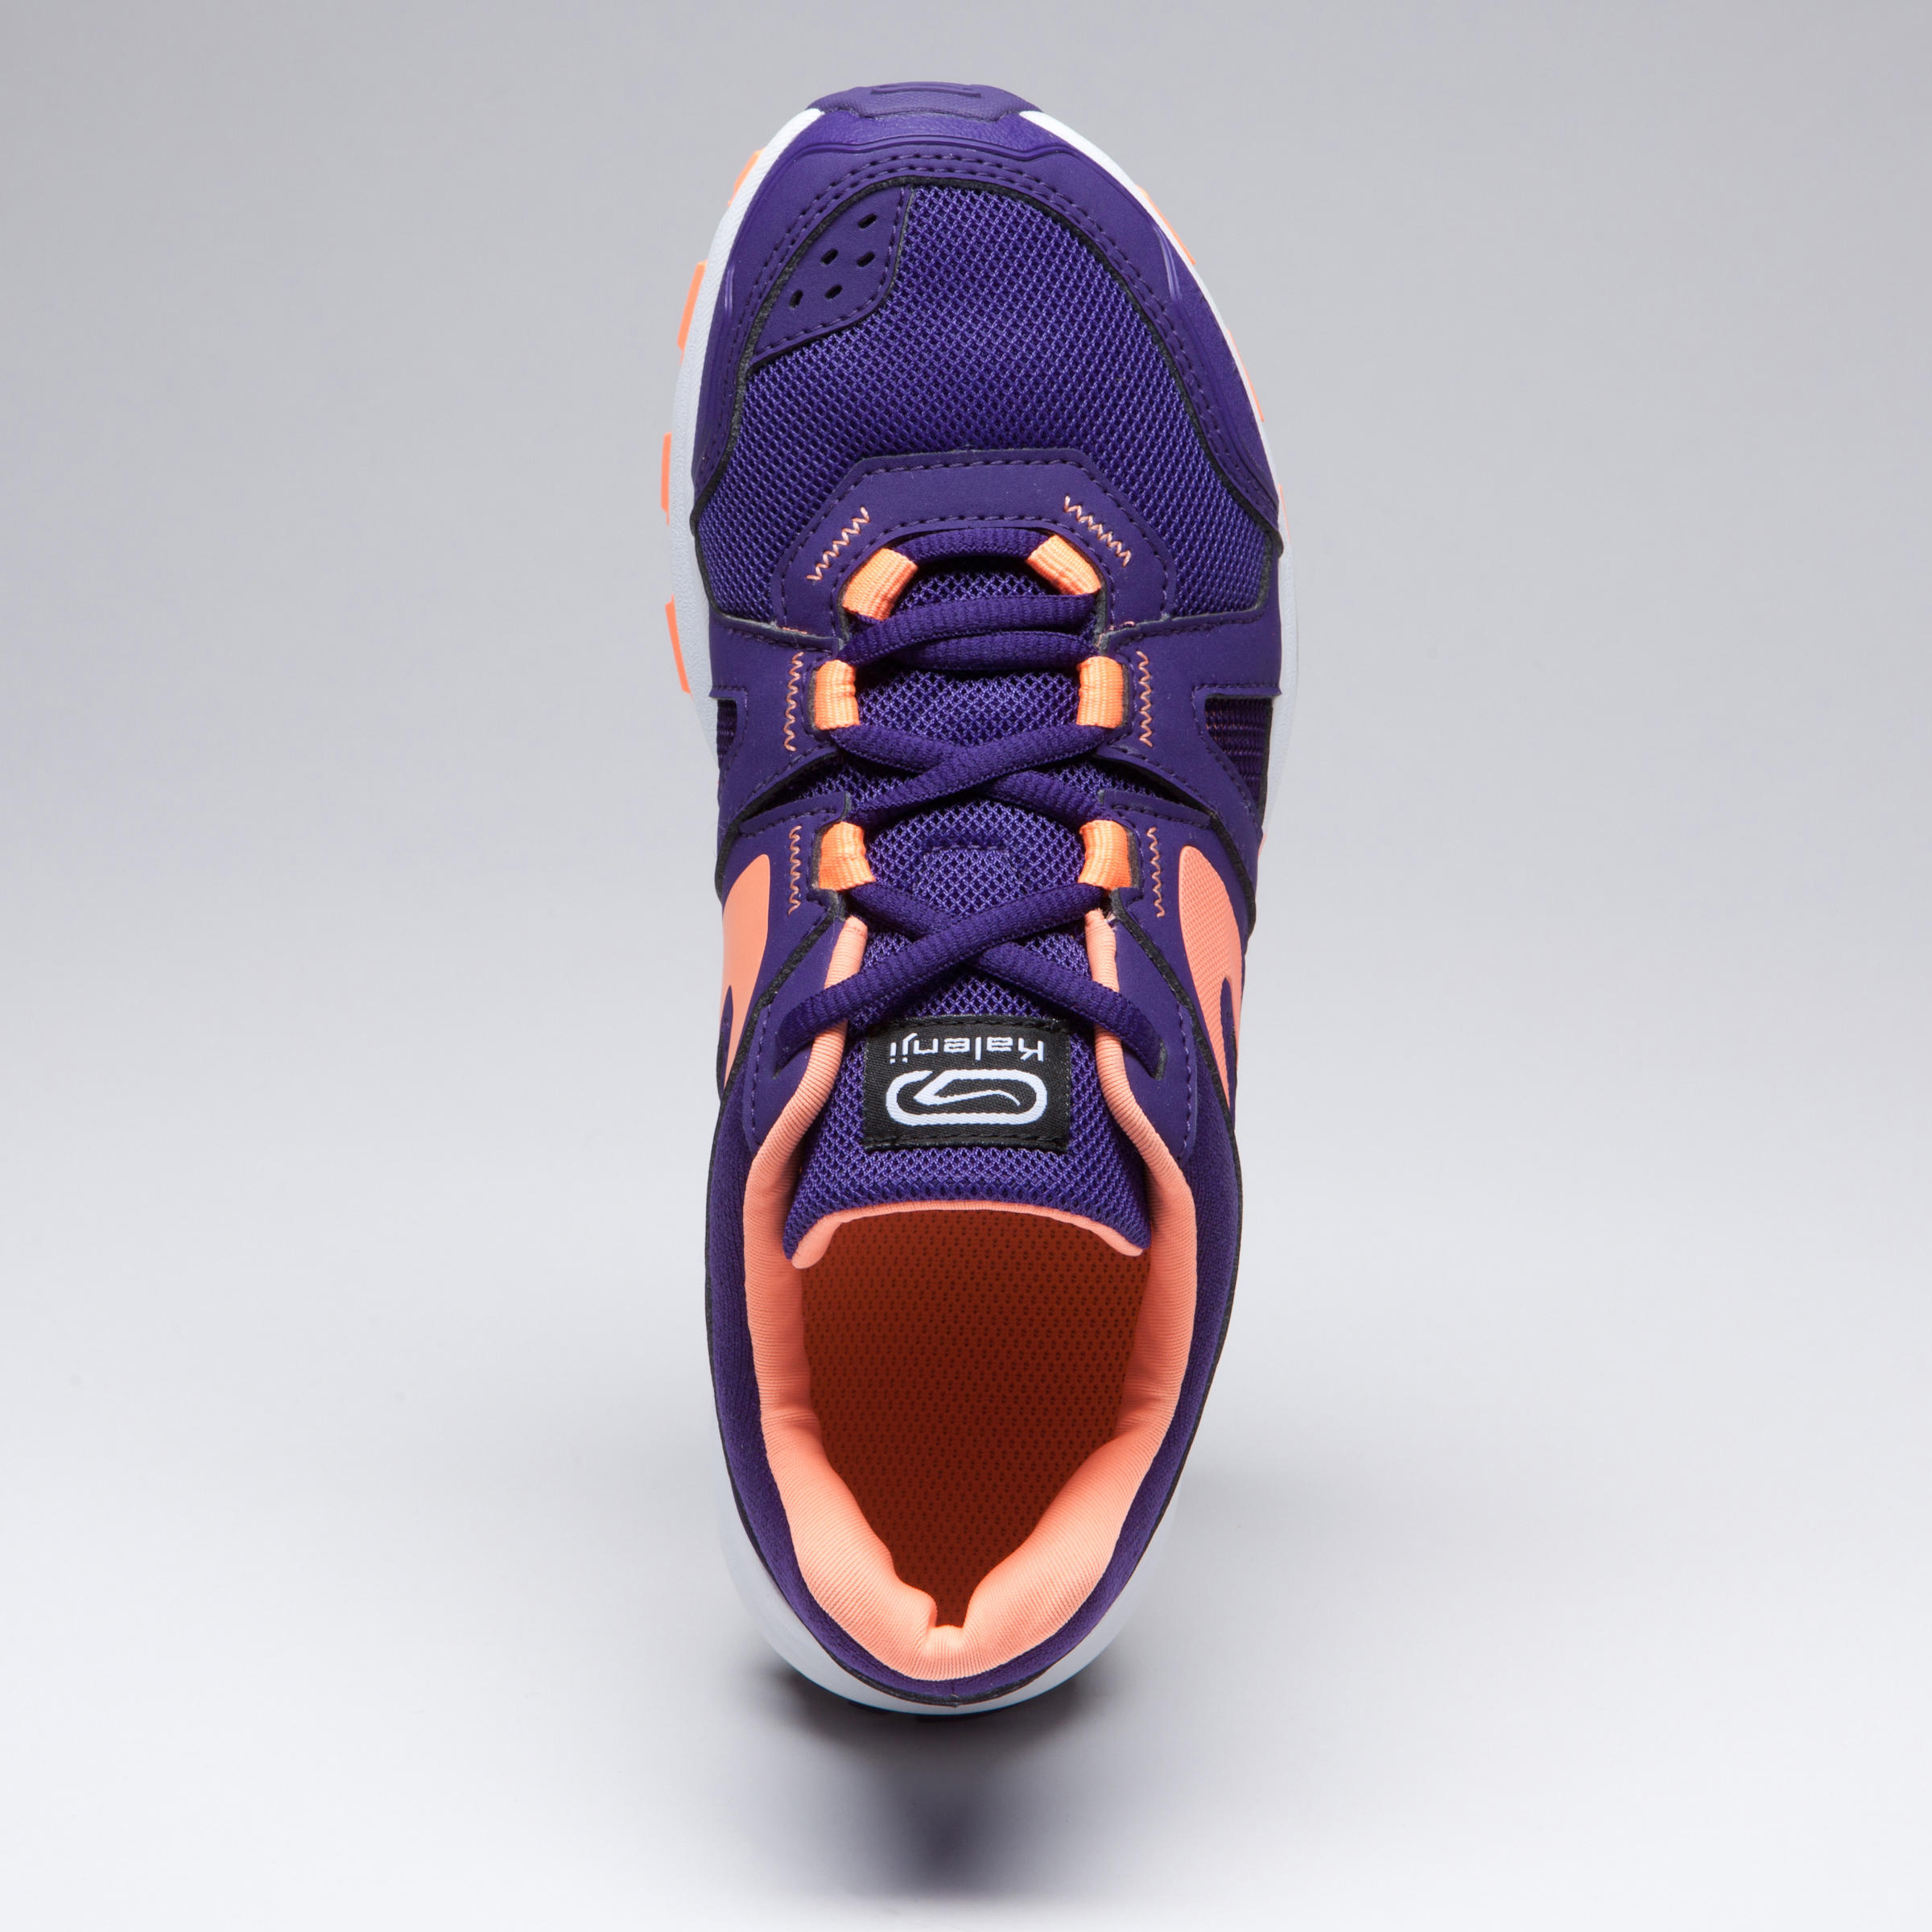 Kiprun Grip Children's Track & Field Shoes - Purple Coral